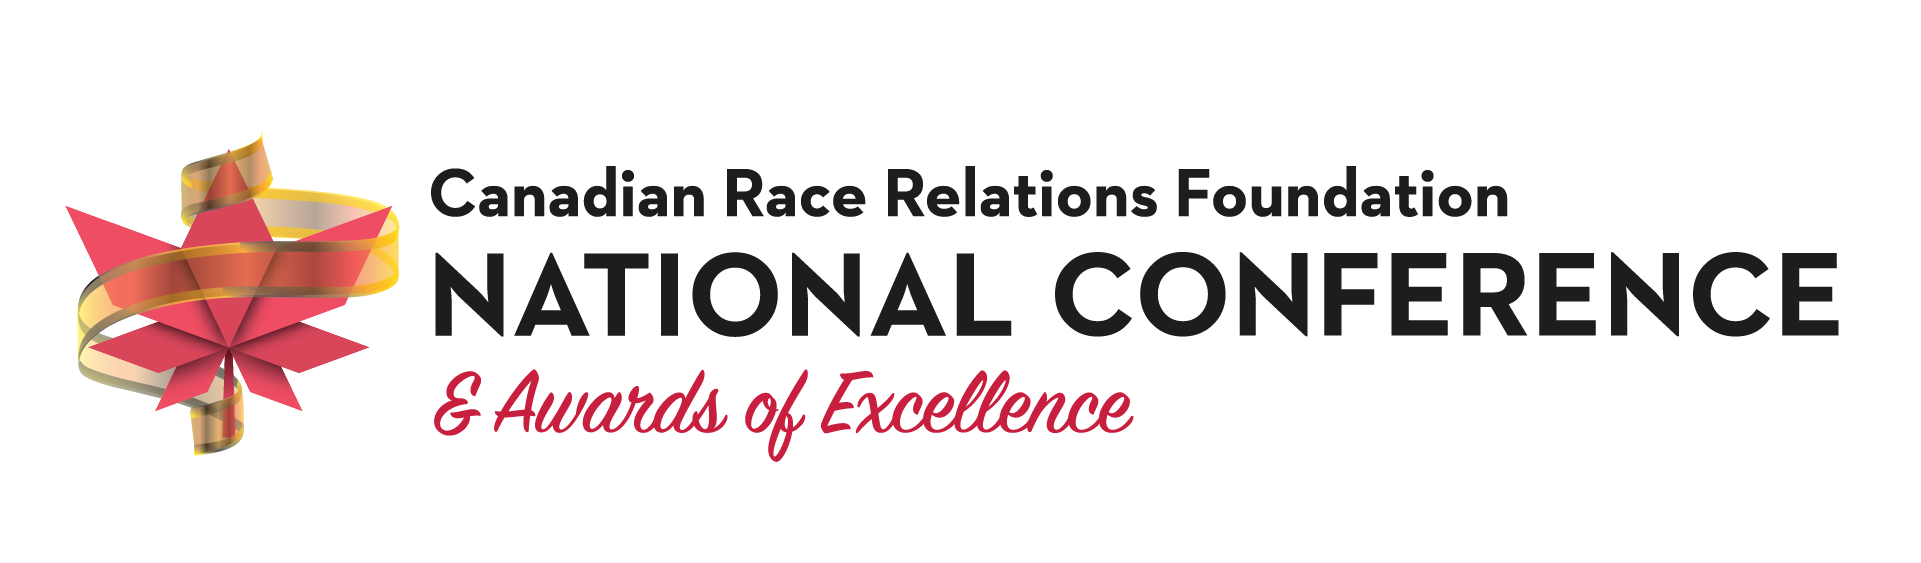 Announcing the 2018 National Conference Call for Proposals